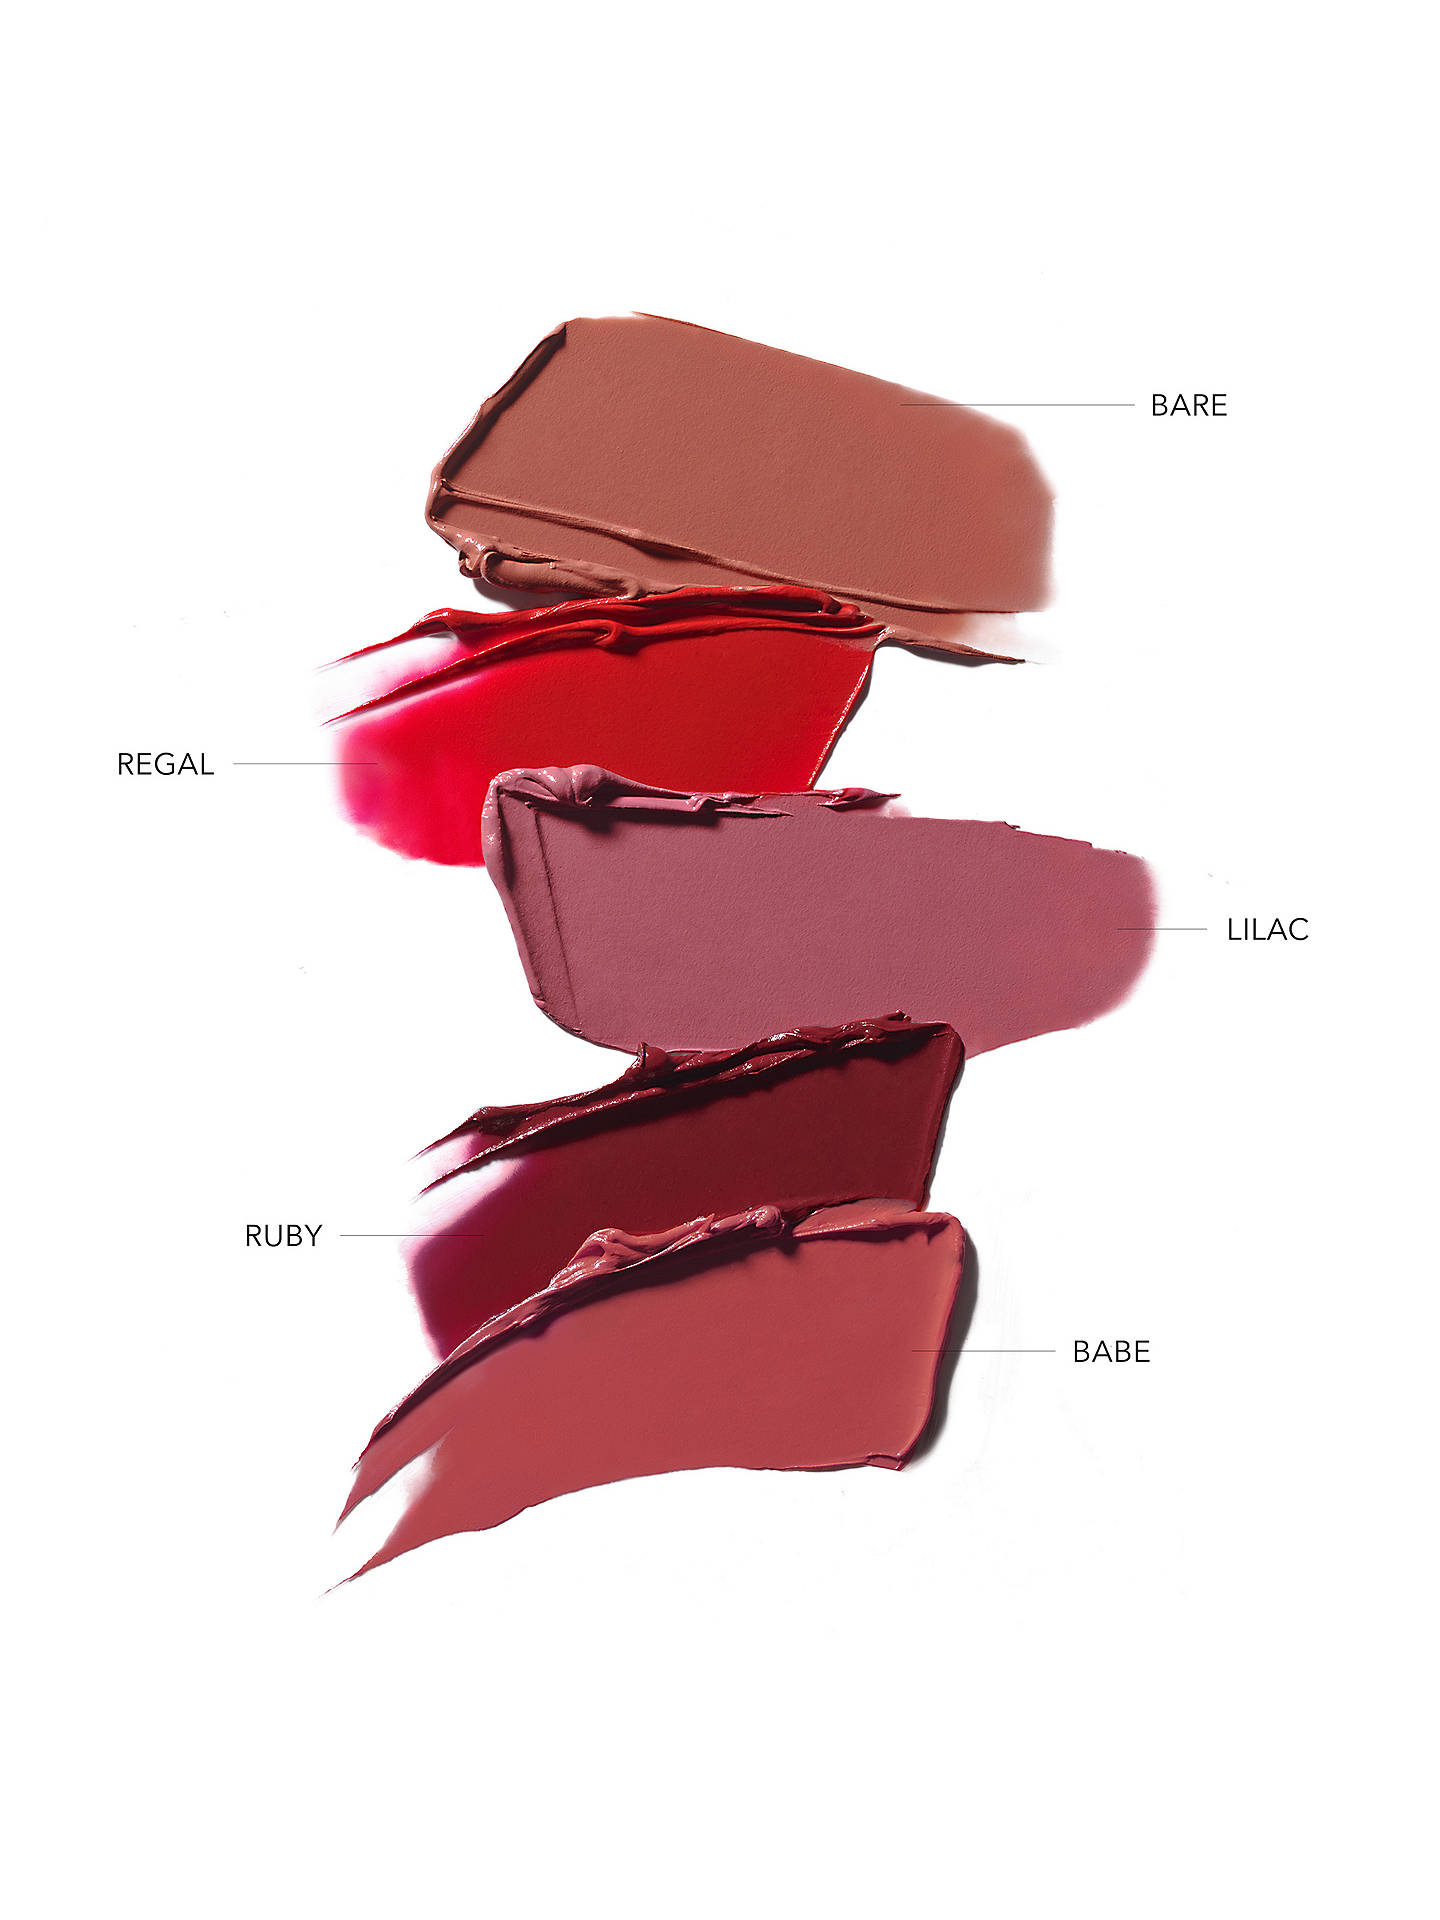 BuyBobbi Brown Lip Crush Mini Crushed Lip Colour Kit Online at johnlewis.com